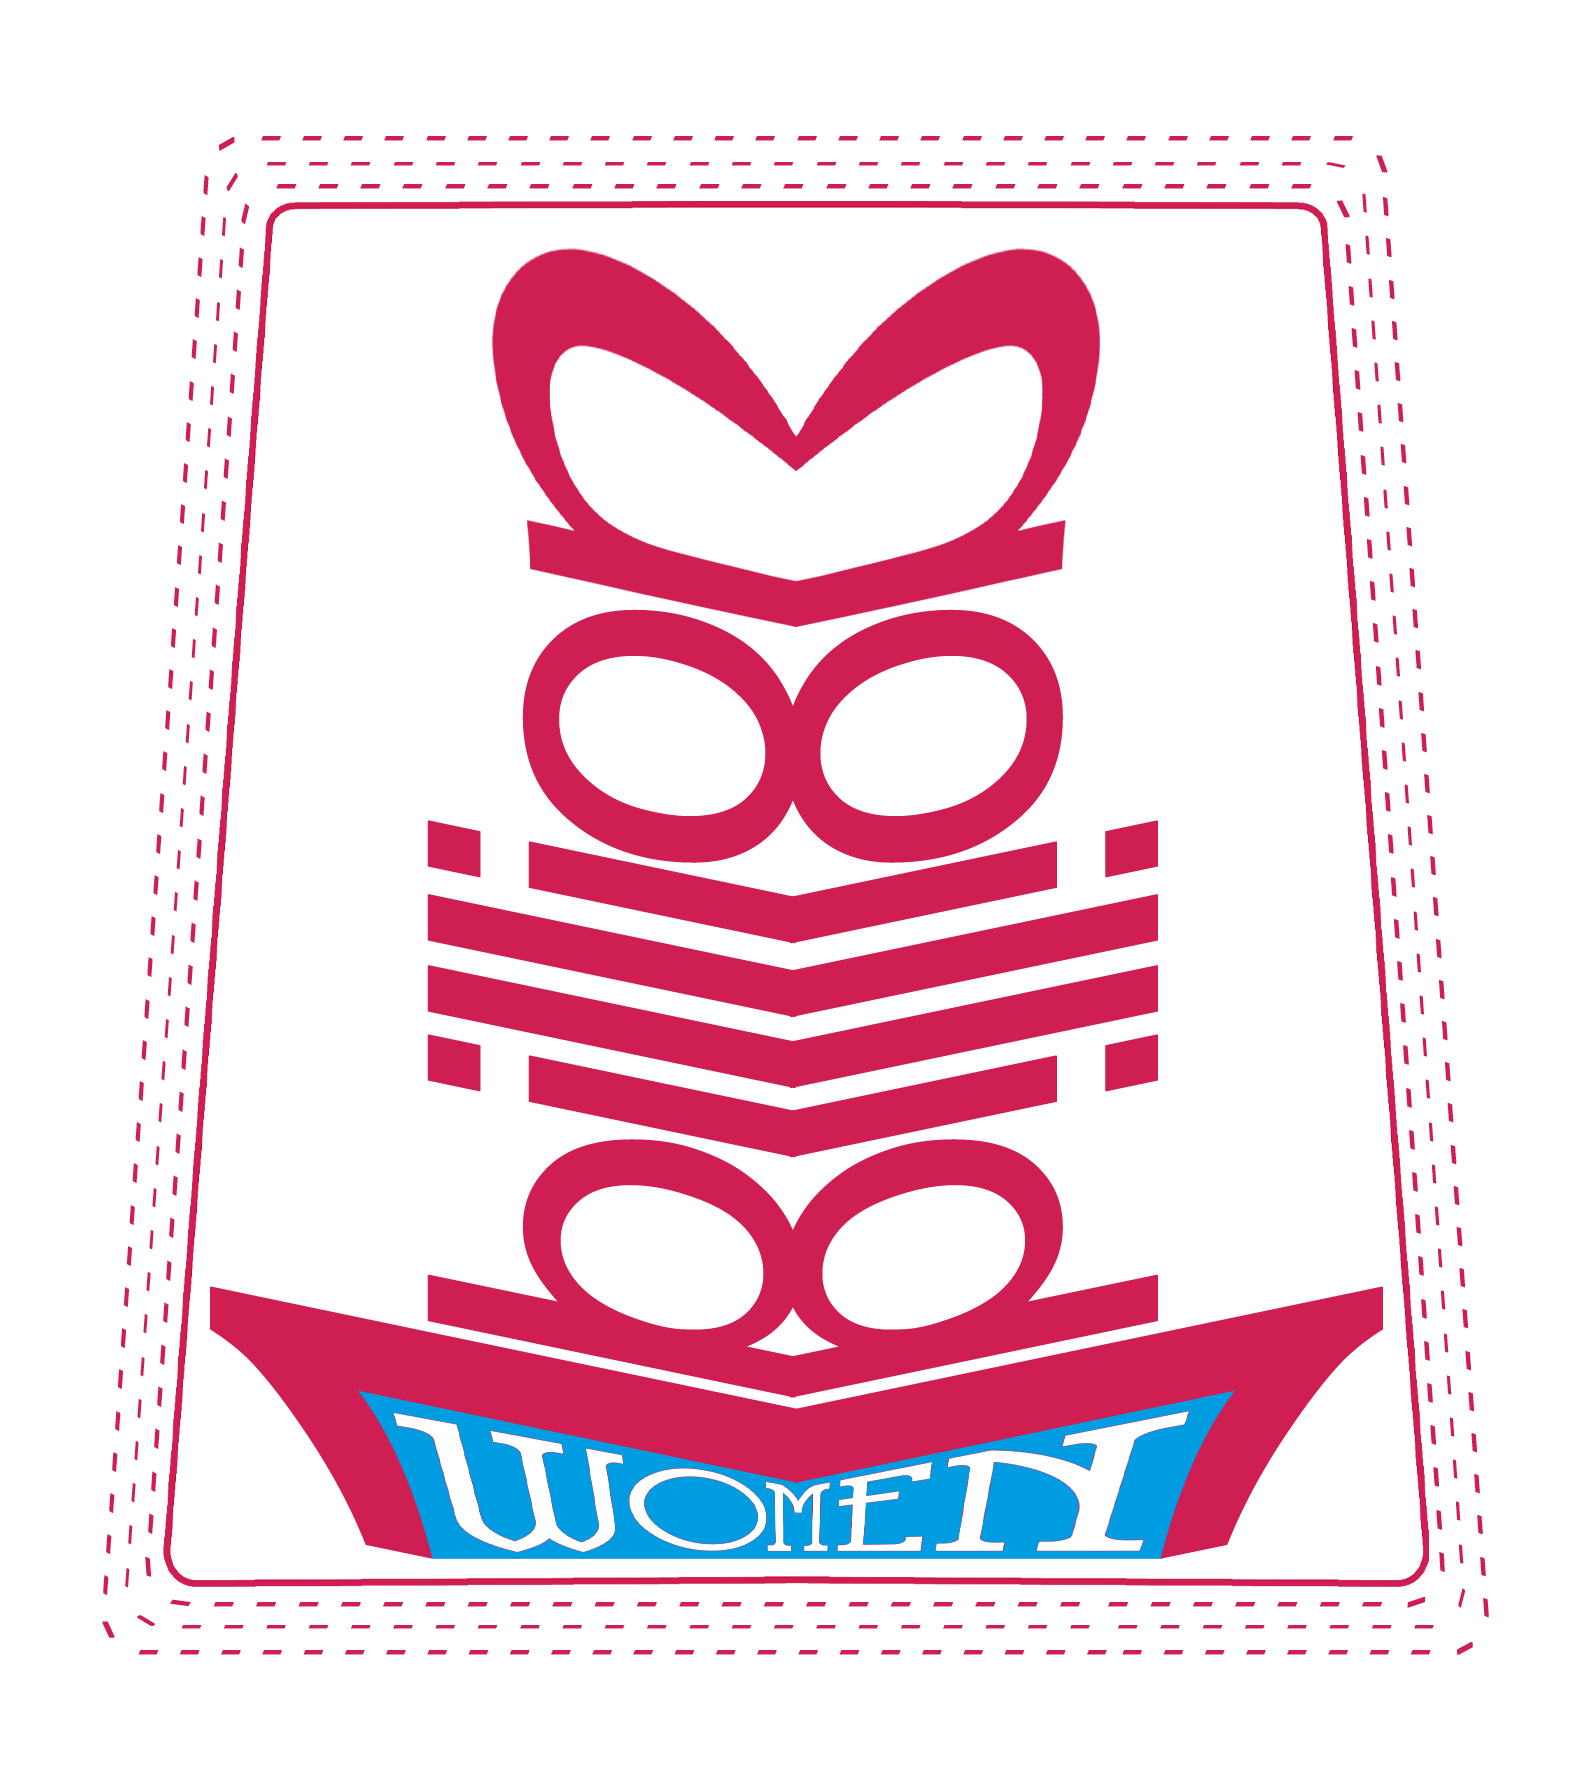 Logo Design by Cesar III Sotto - Entry No. 49 in the Logo Design Contest Fun Logo Design for 1BillionWomen.